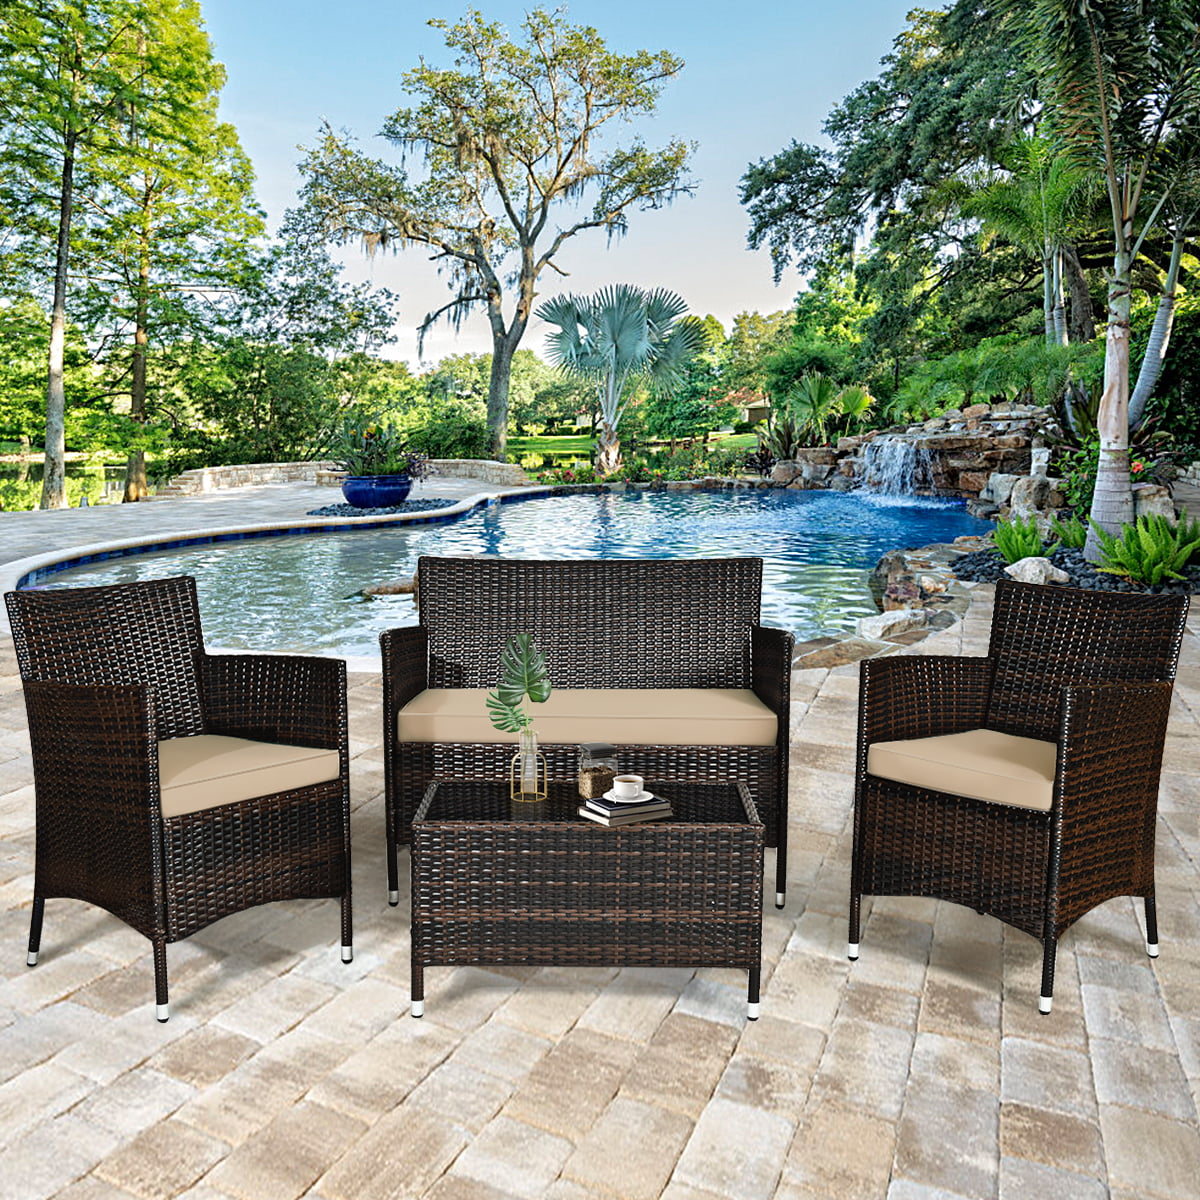 gymax 4pcs patio rattan outdoor furniture set w cushioned chair loveseat table